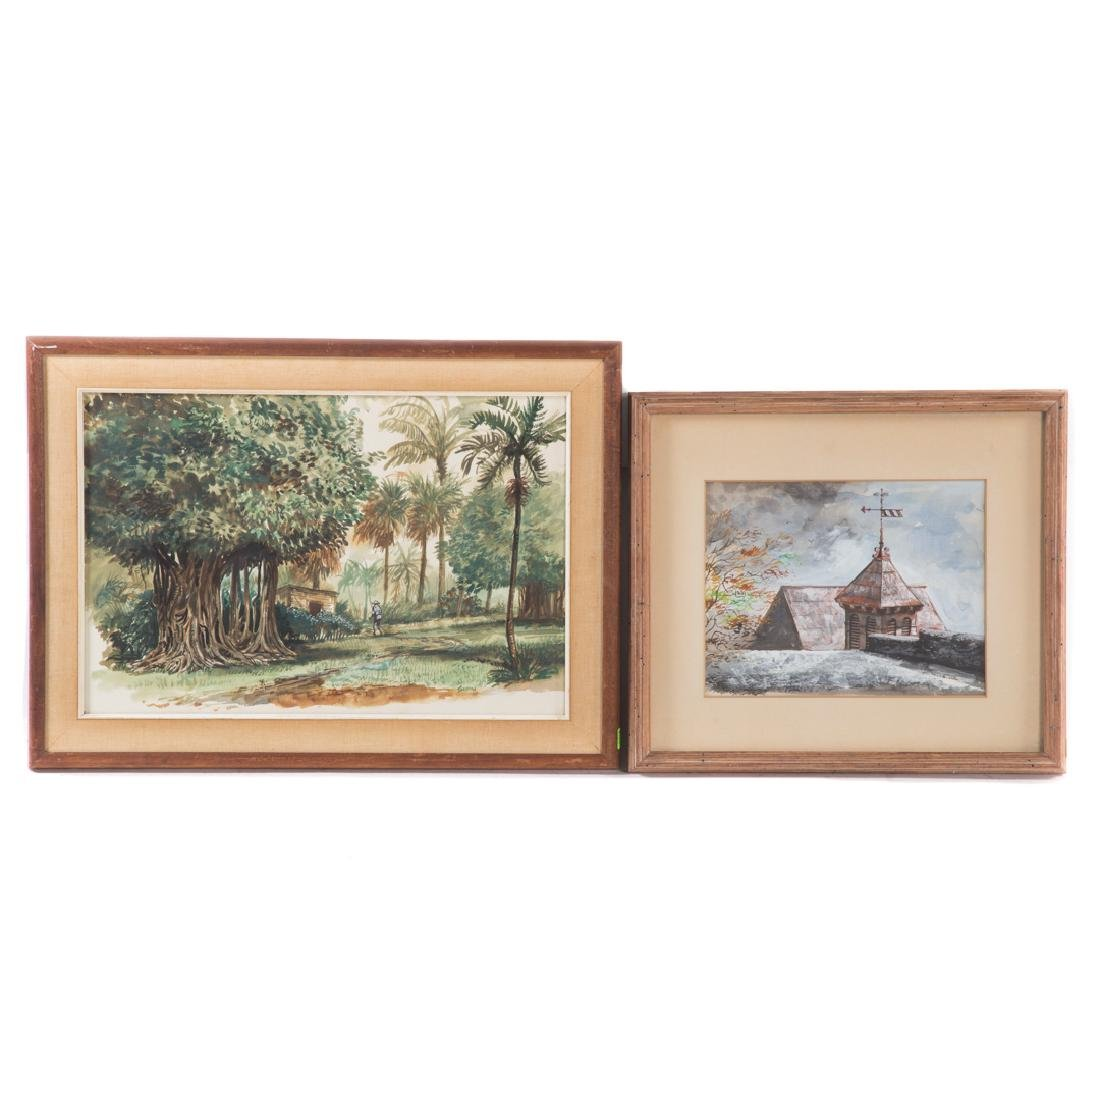 Joseph Sheppard. Two framed watercolors on paper